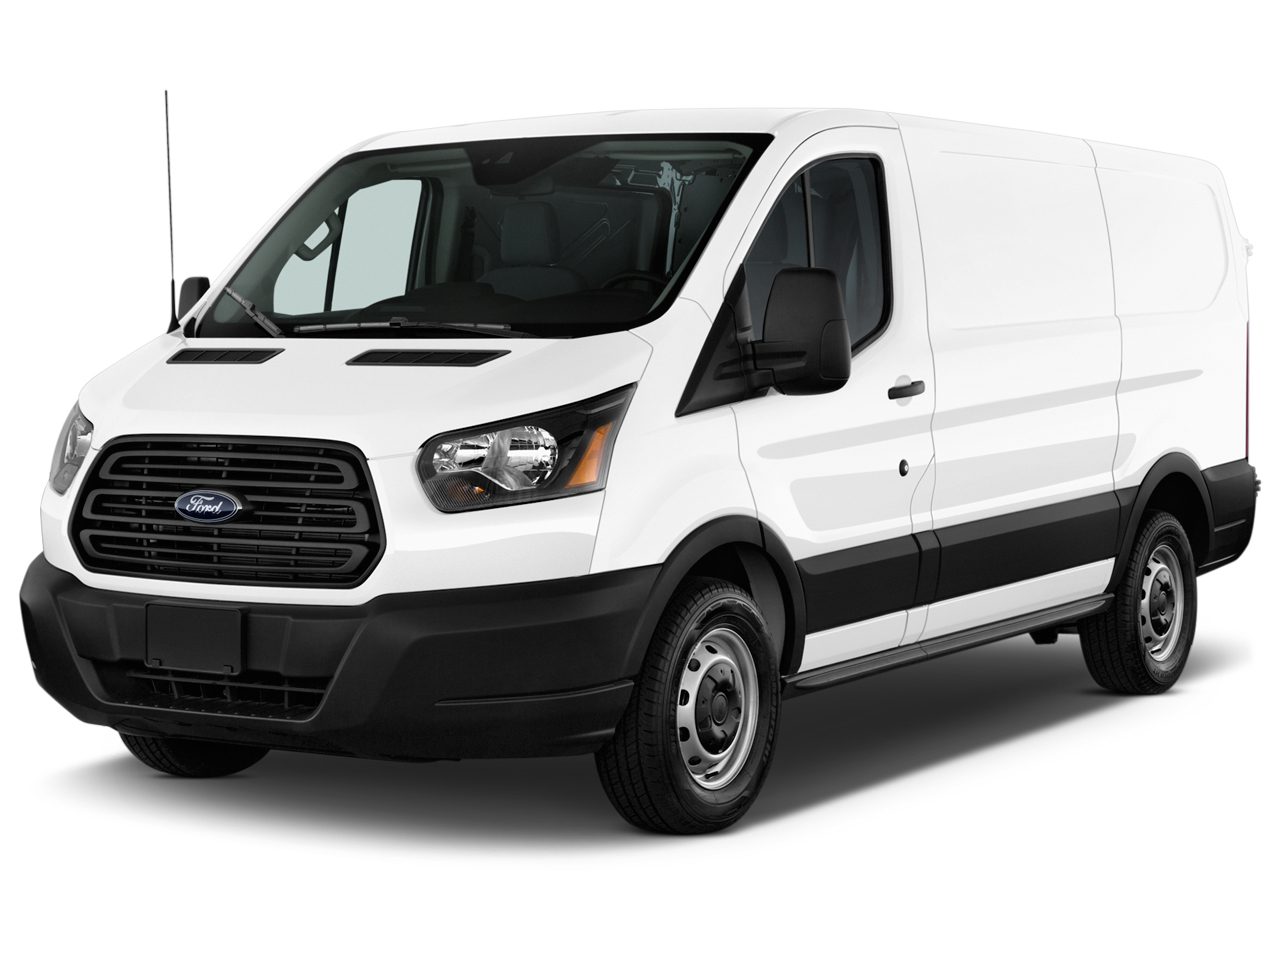 2017 Ford Transit Van Review Ratings Specs Prices And